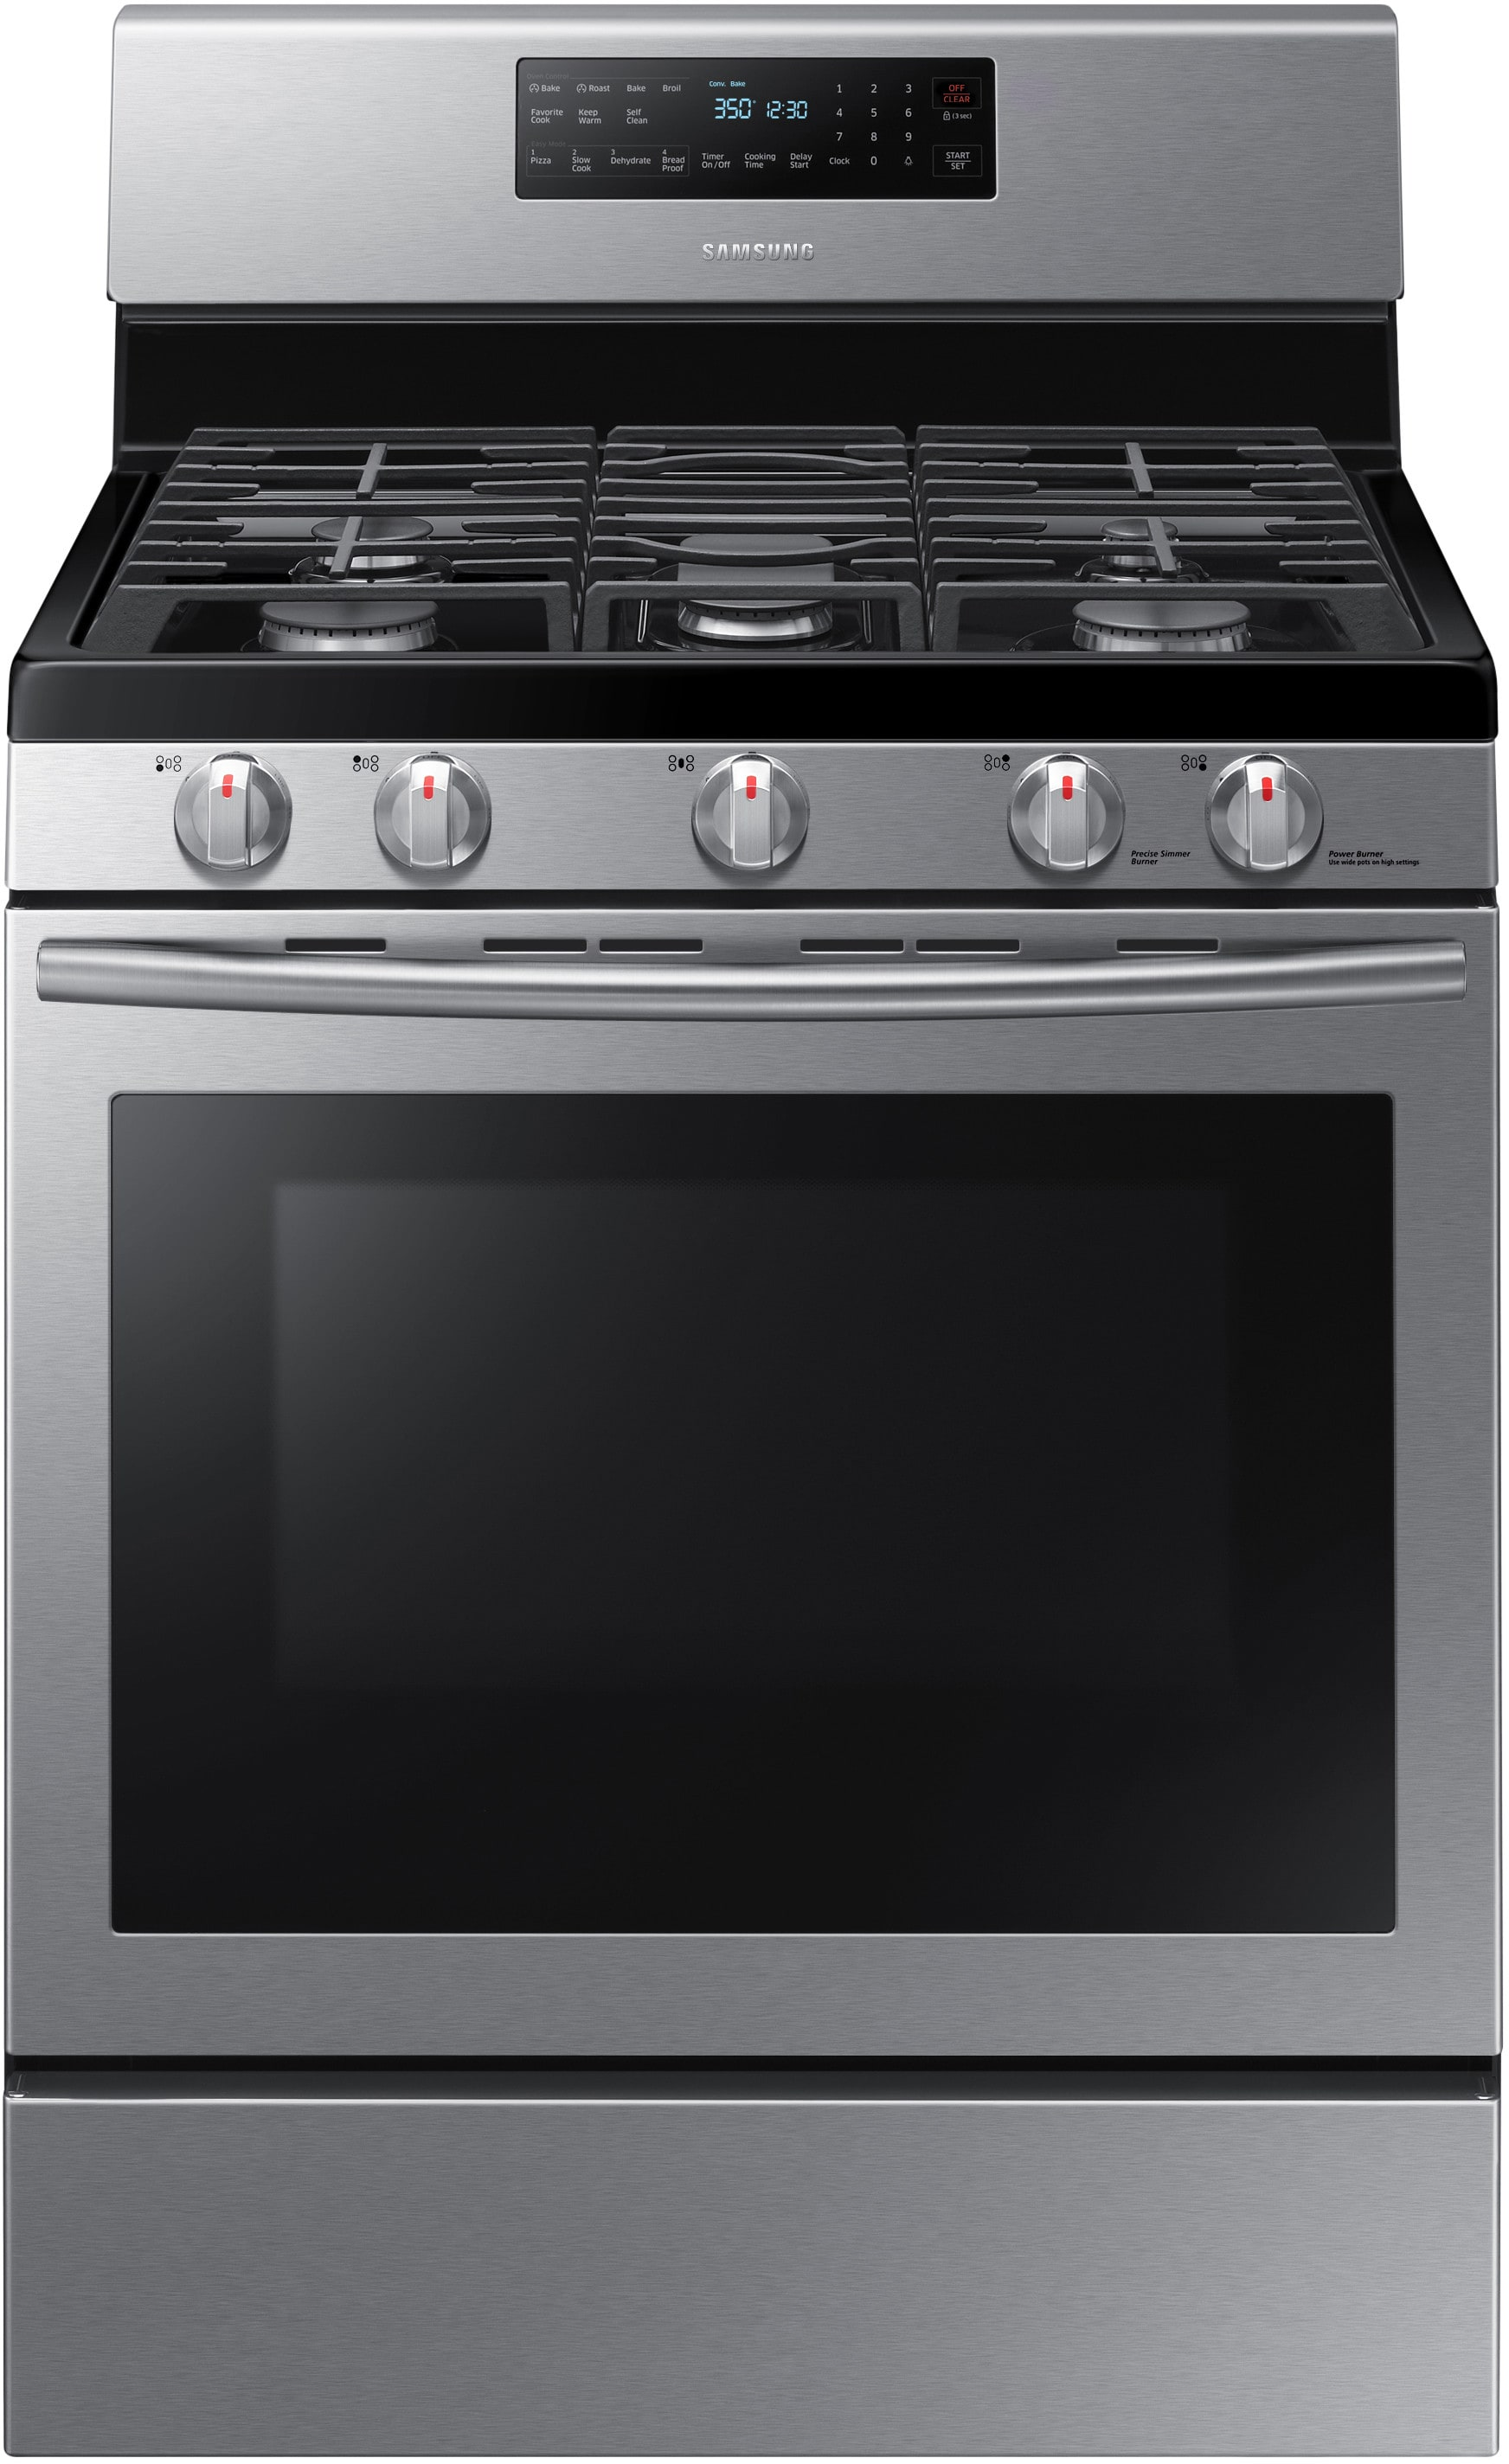 Viking Vgcc5366bss 36 U0026quot Prostyle Gas Range Stainless Steel Manual Guide